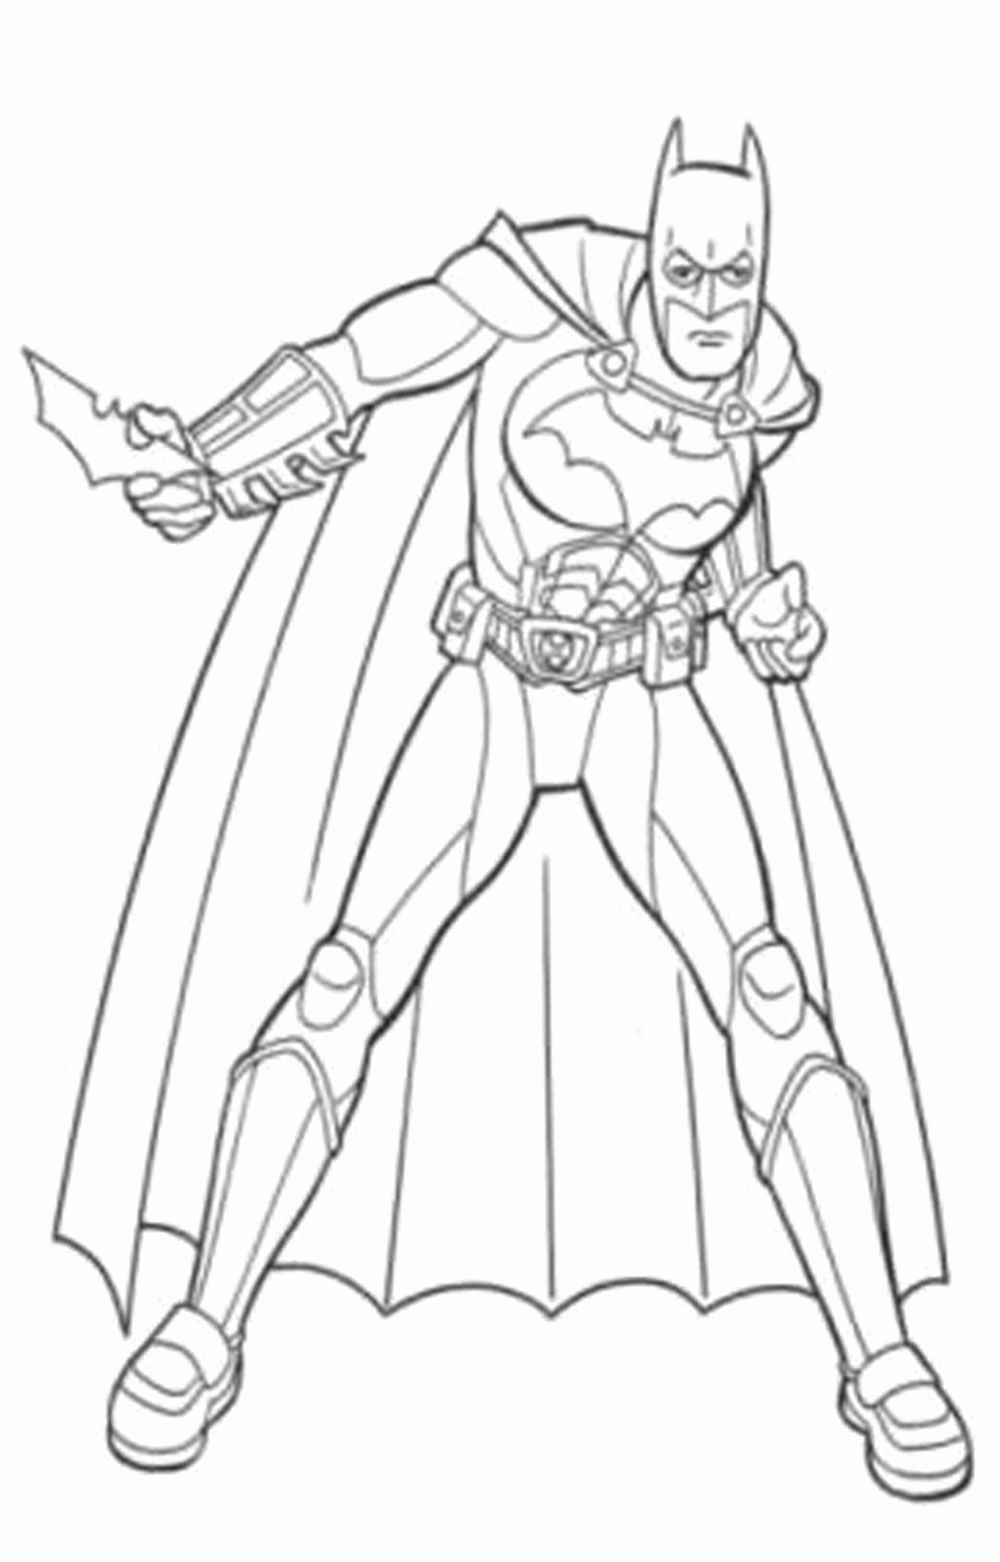 Coloring Pages for Kids Of Batman Coloring Pages for Kids